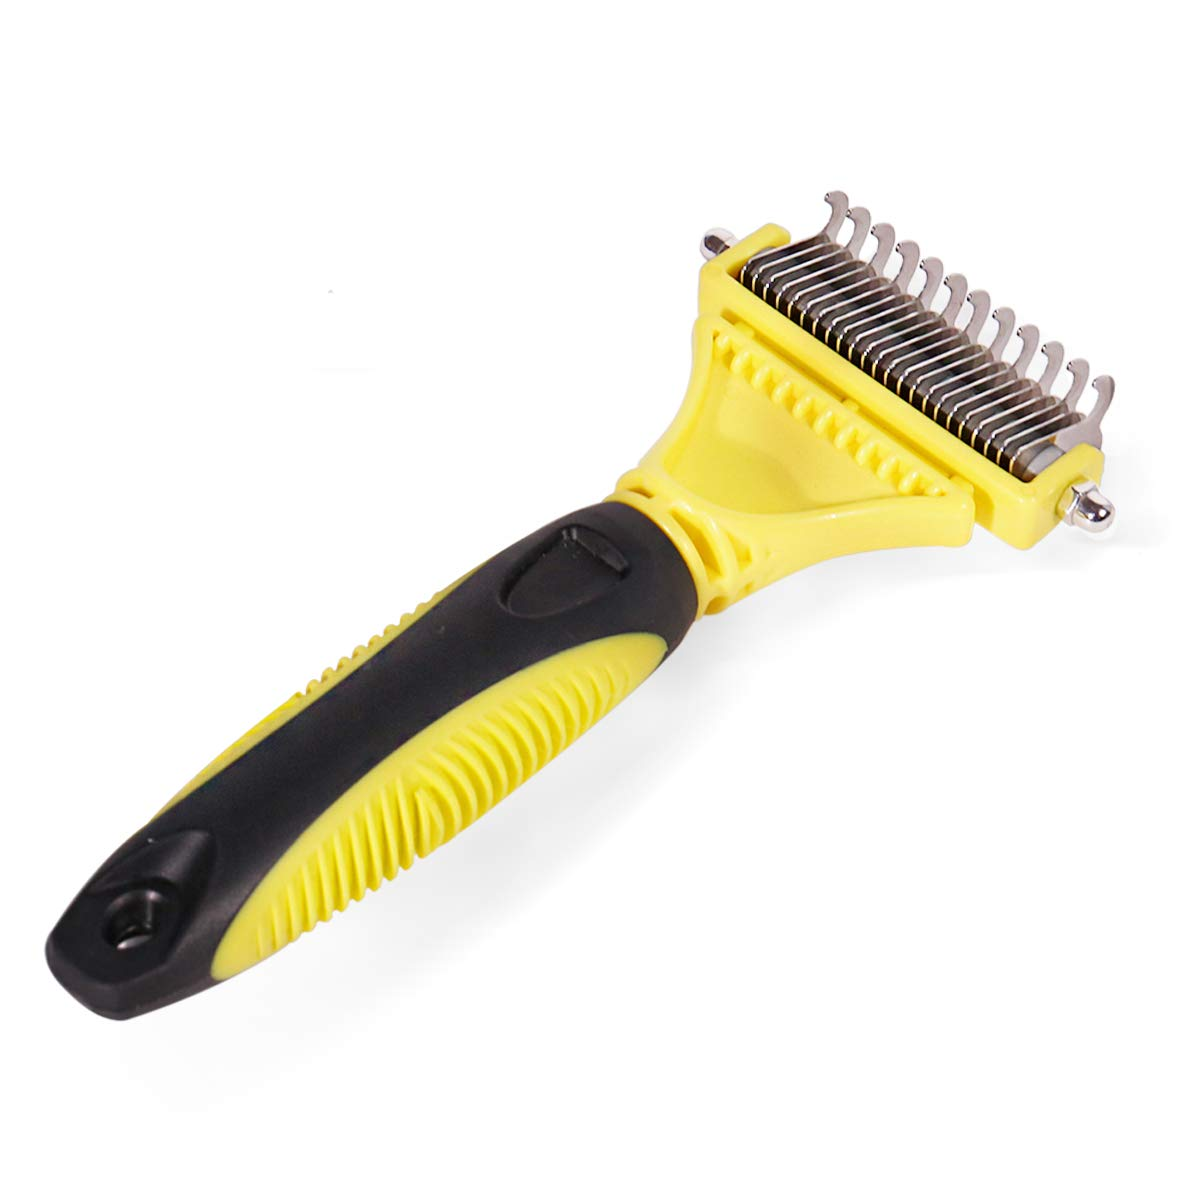 Speedy Pet Dog Dematting Comb, Grooming Tool 2 Sided Undercoat Rake for Cats Dogs, Gently Removes Toughest Mats, Tangles and Knots Hair